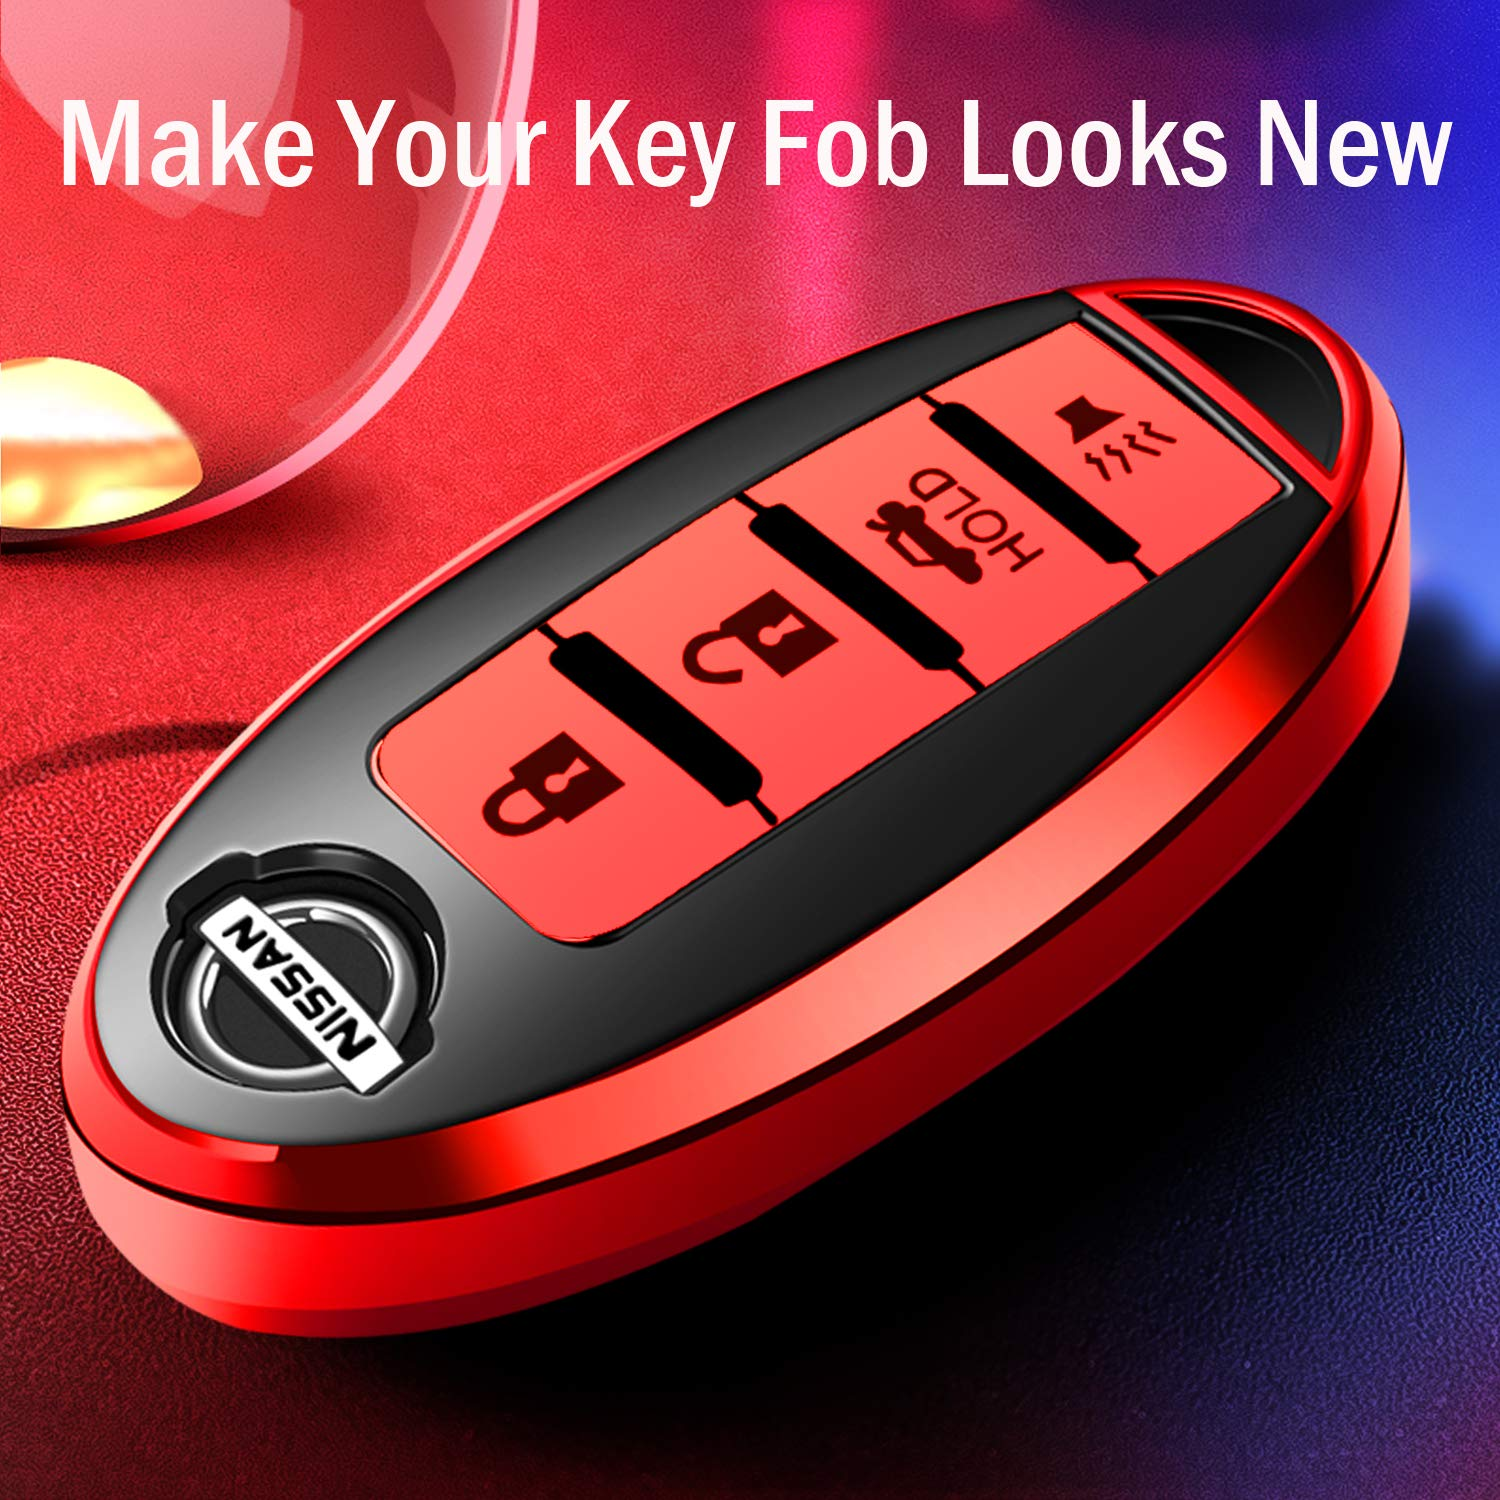 Key Fob Case for Nissan Altima Sentra Maxima Rogue Armada Pathfinder 370Z Smart 4 Buttons Premium Soft TPU Full Cover Protection Smart Remote Keyless,Blue COMPONALL for Nissan Key Fob Cover